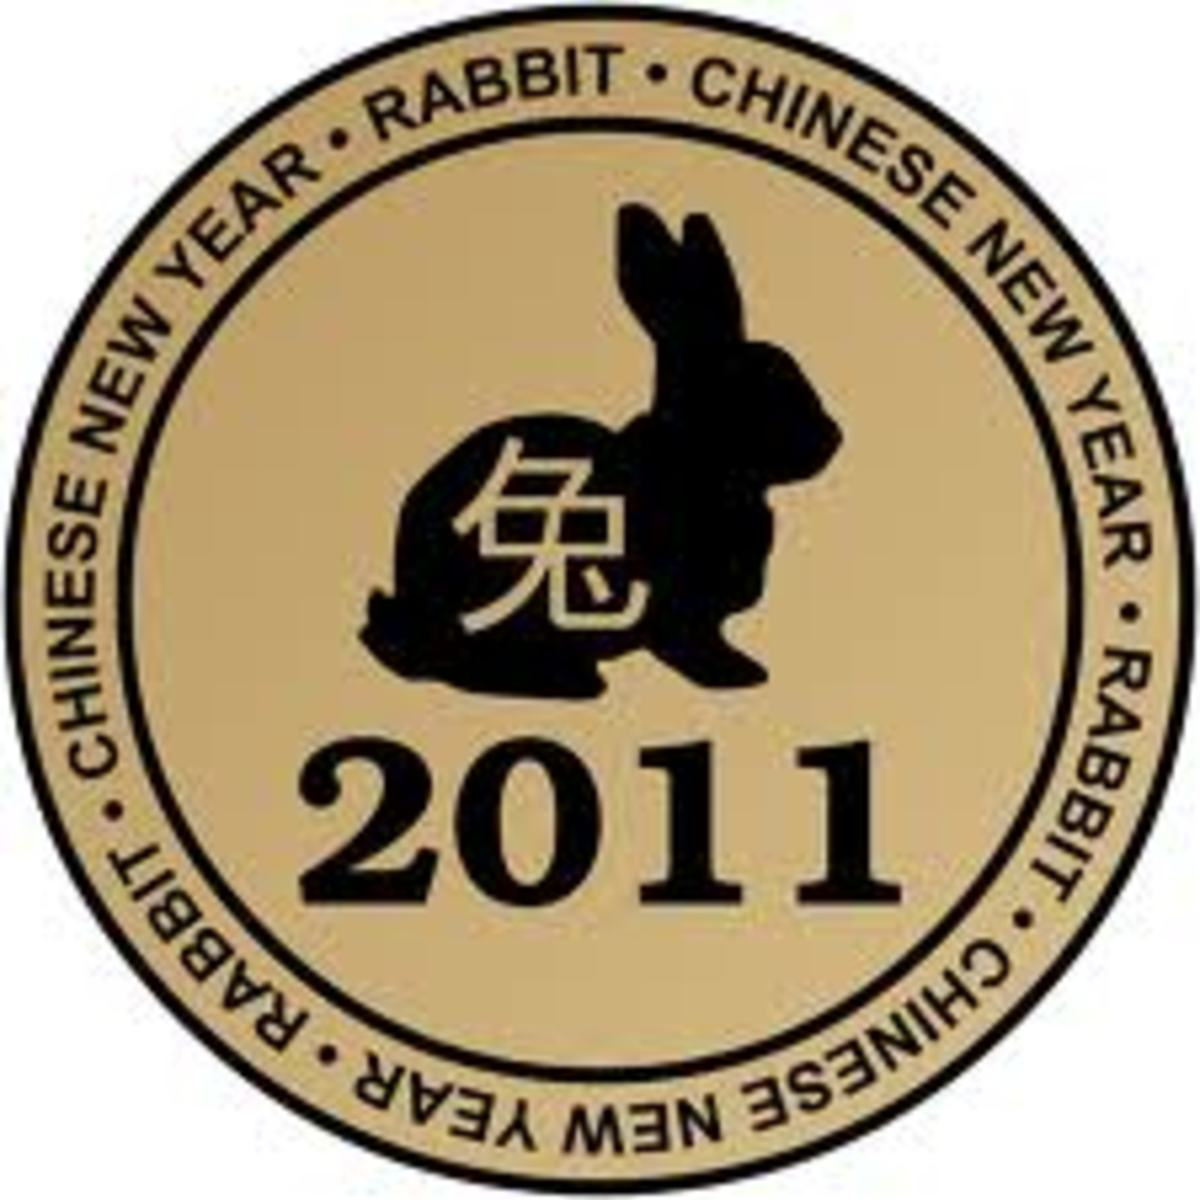 I'm the year of the rabbit, FYI.